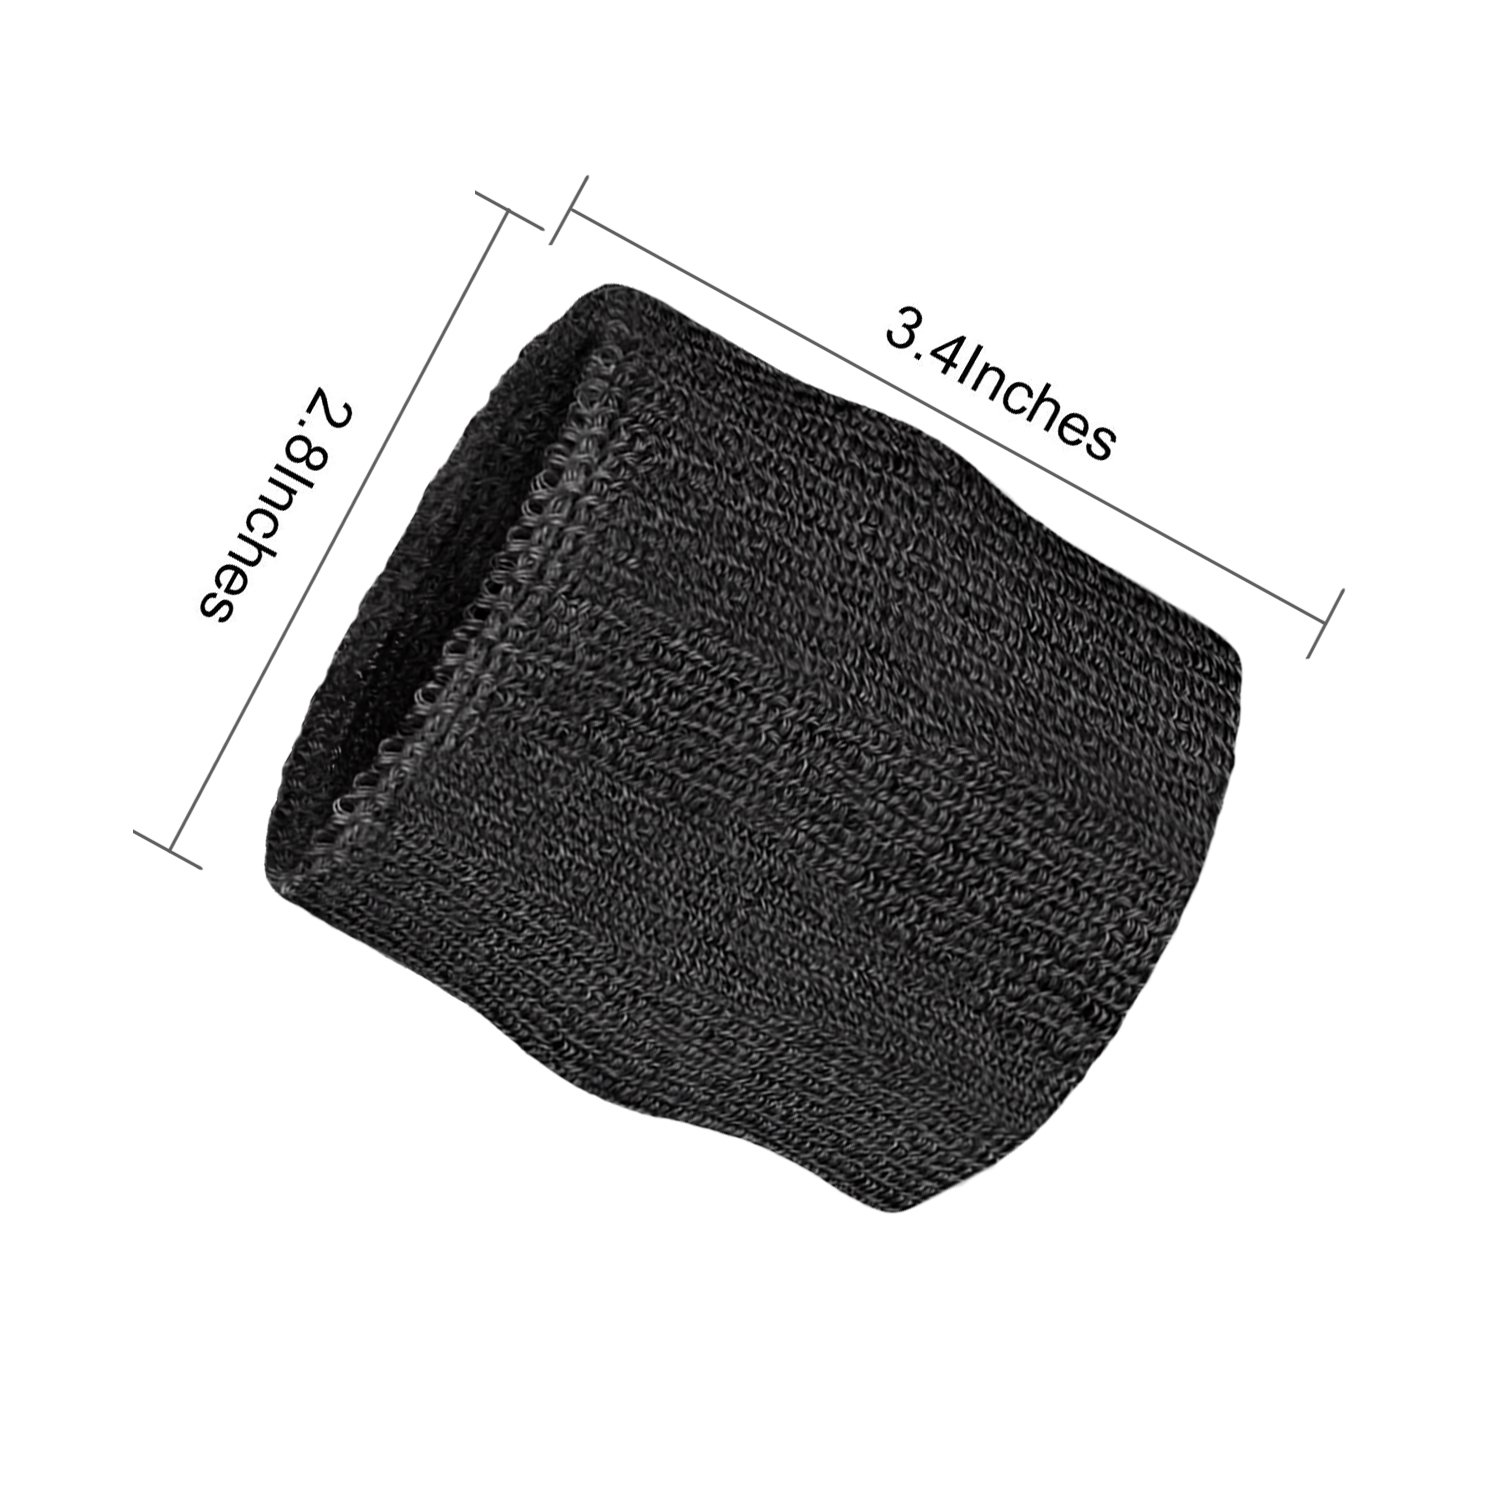 Elehere 2018 New Sweatband Wristband for Sports Basketball Football Absorbent Party Outdoor 3.5'' Pack of 6 (Black- Headbands & Wristbands) by Elehere (Image #3)